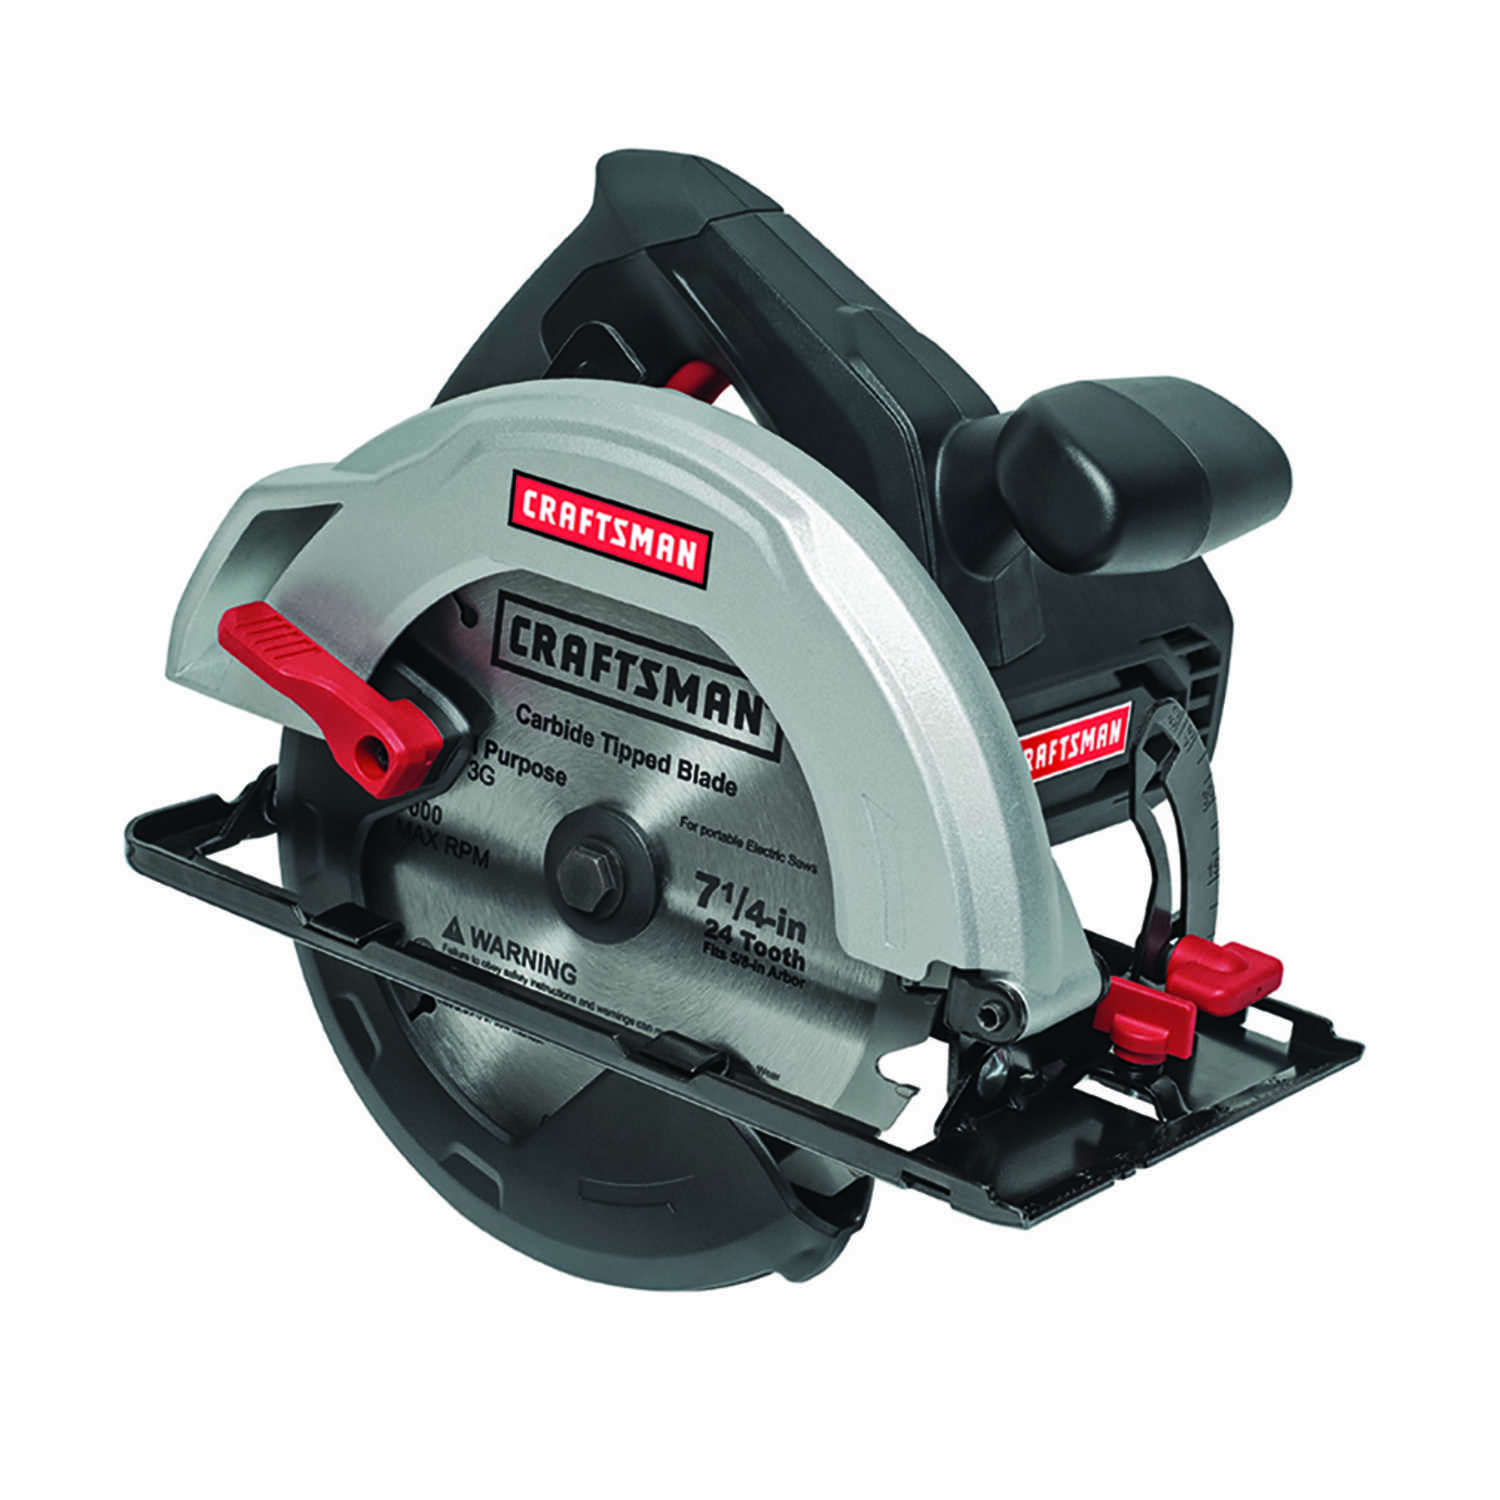 Craftsman 7 14 In 12 Amps Corded Circular Saw 5500 Rpm Ace Hardware